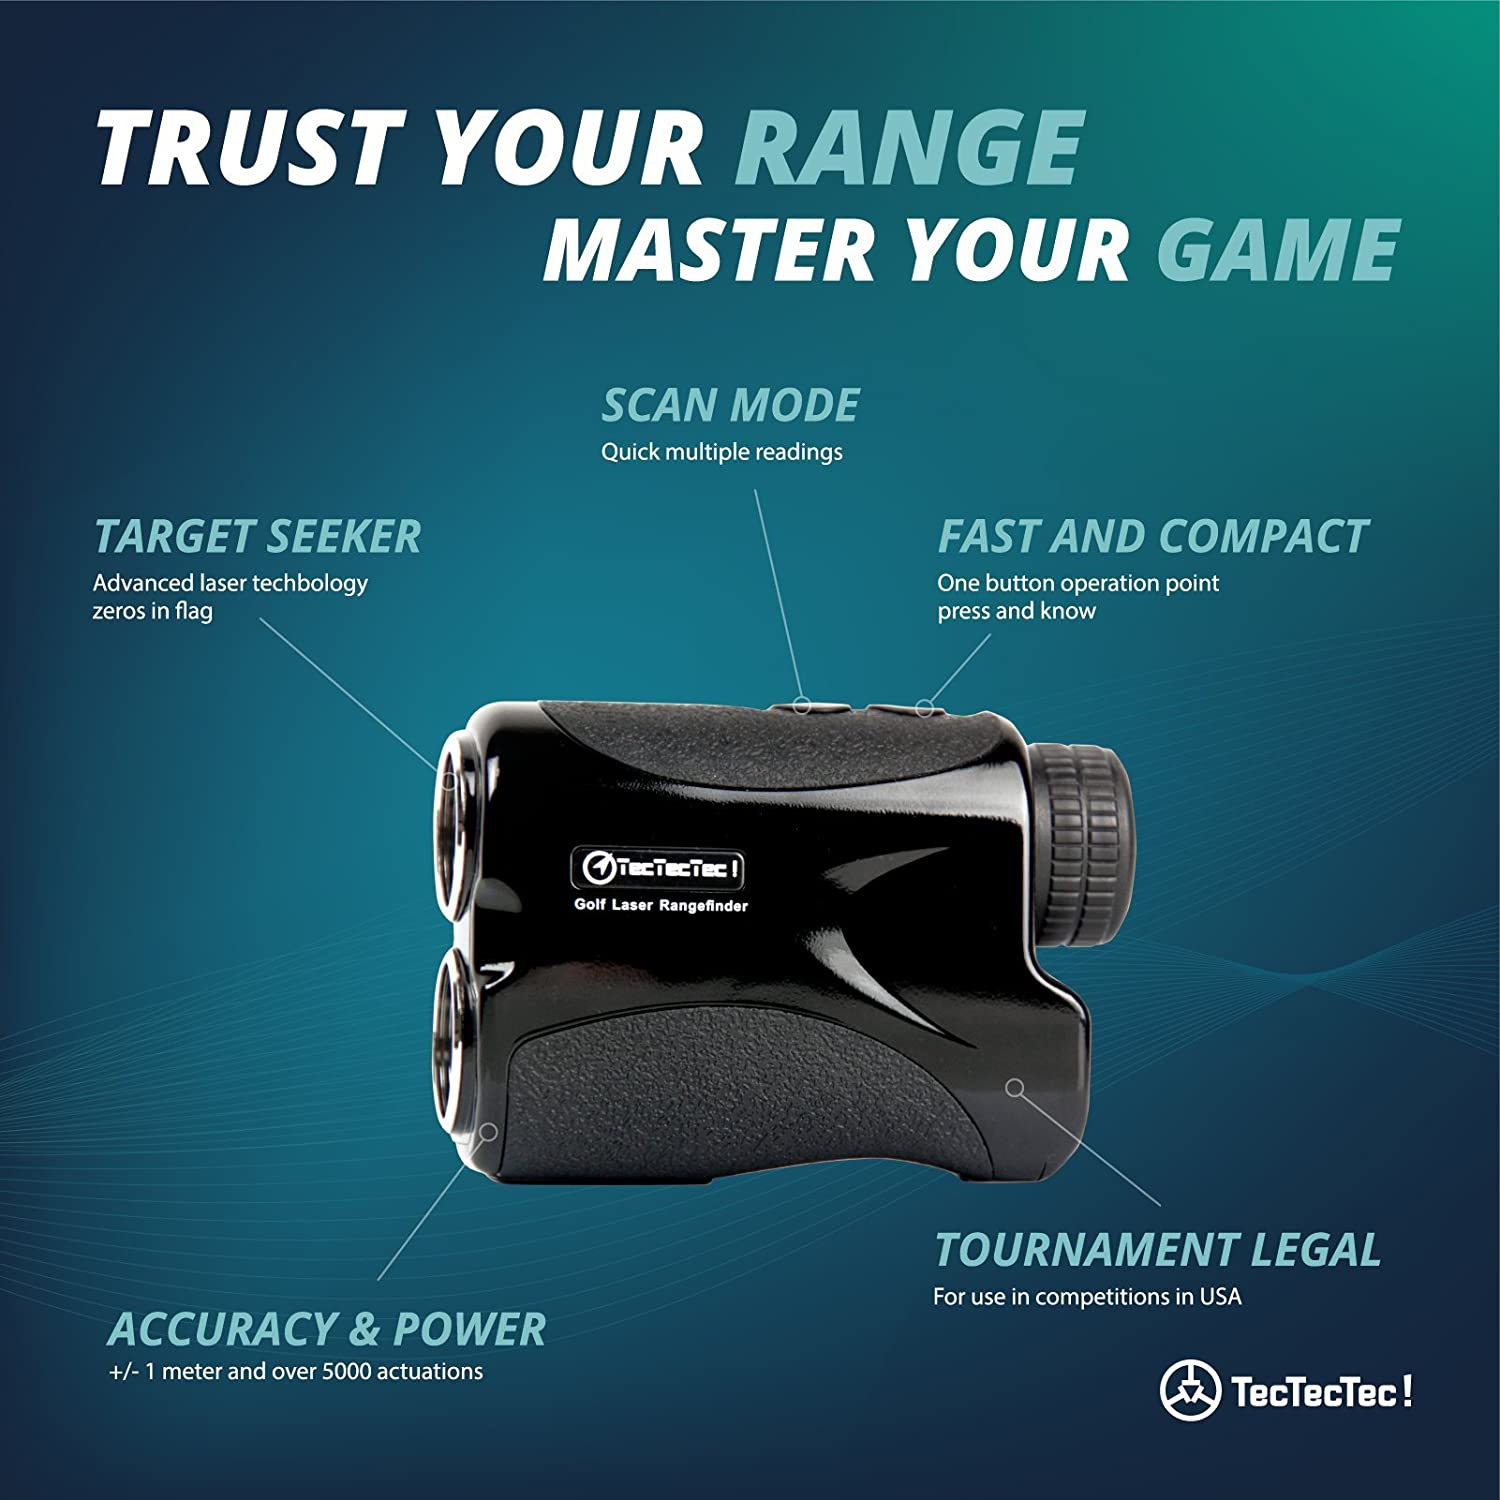 read-my-review-of-tectectec-vpro500-golf-rangefinder-6